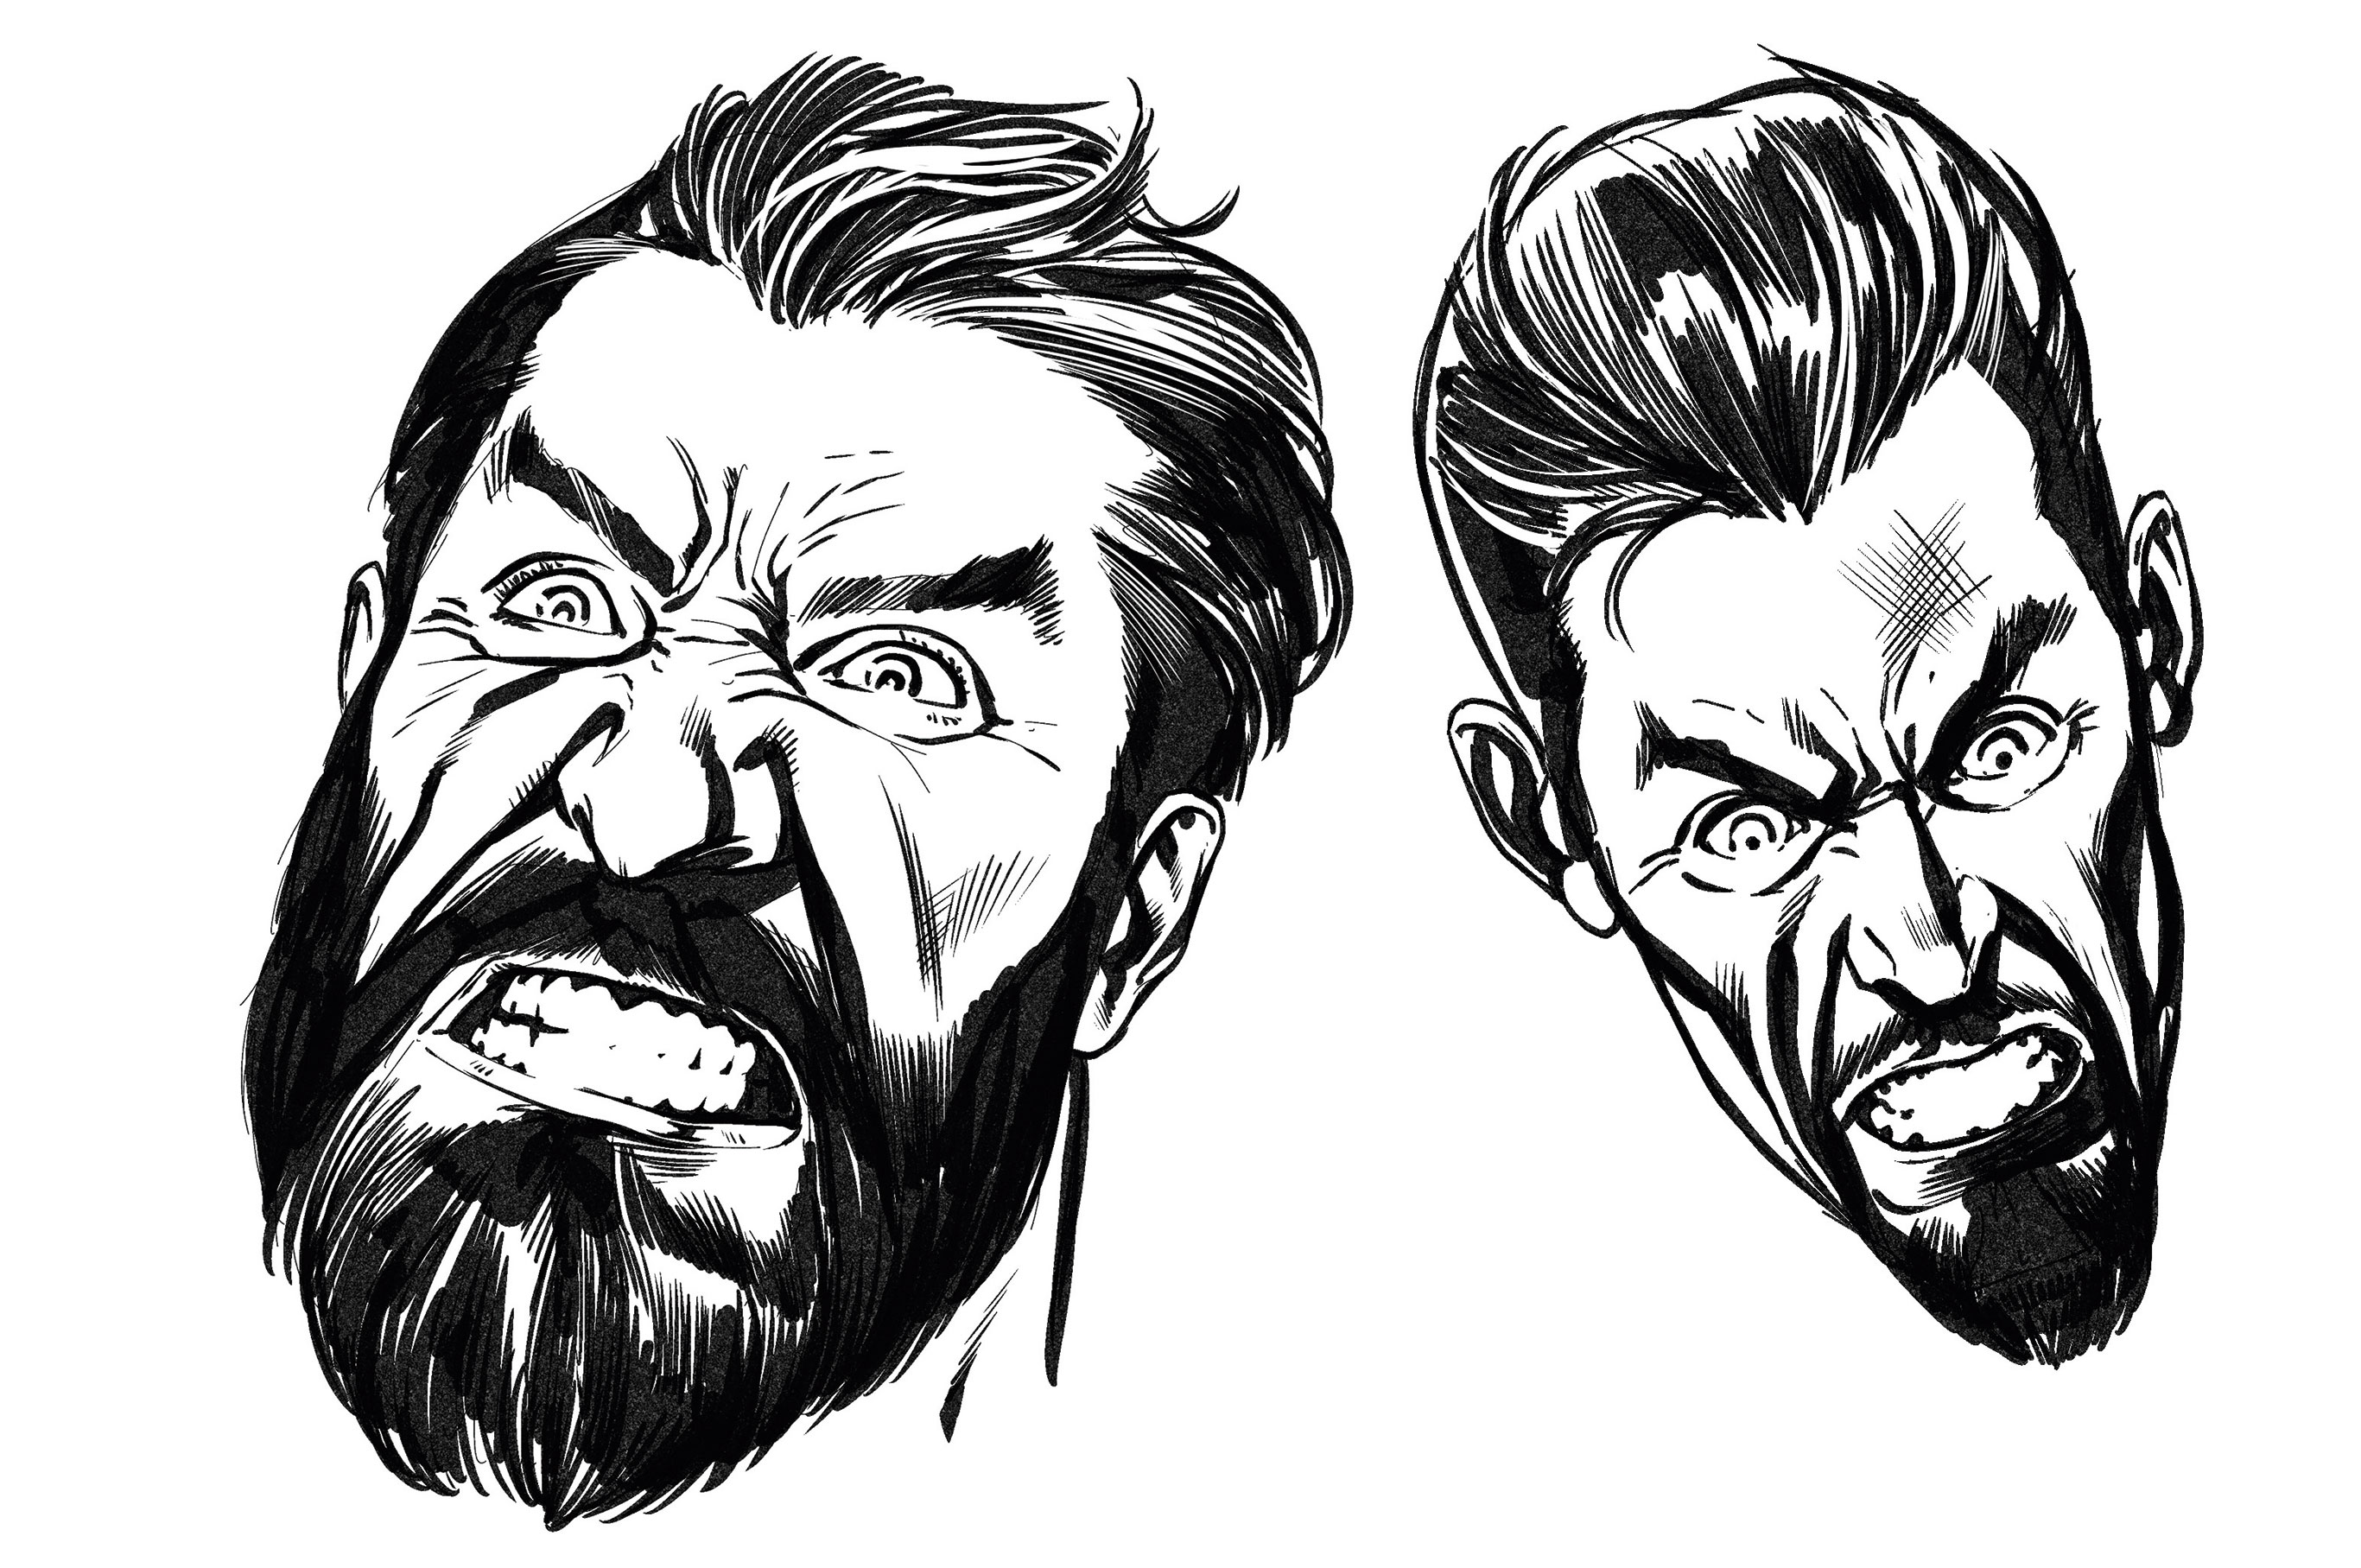 Two drawings of an angry looking man